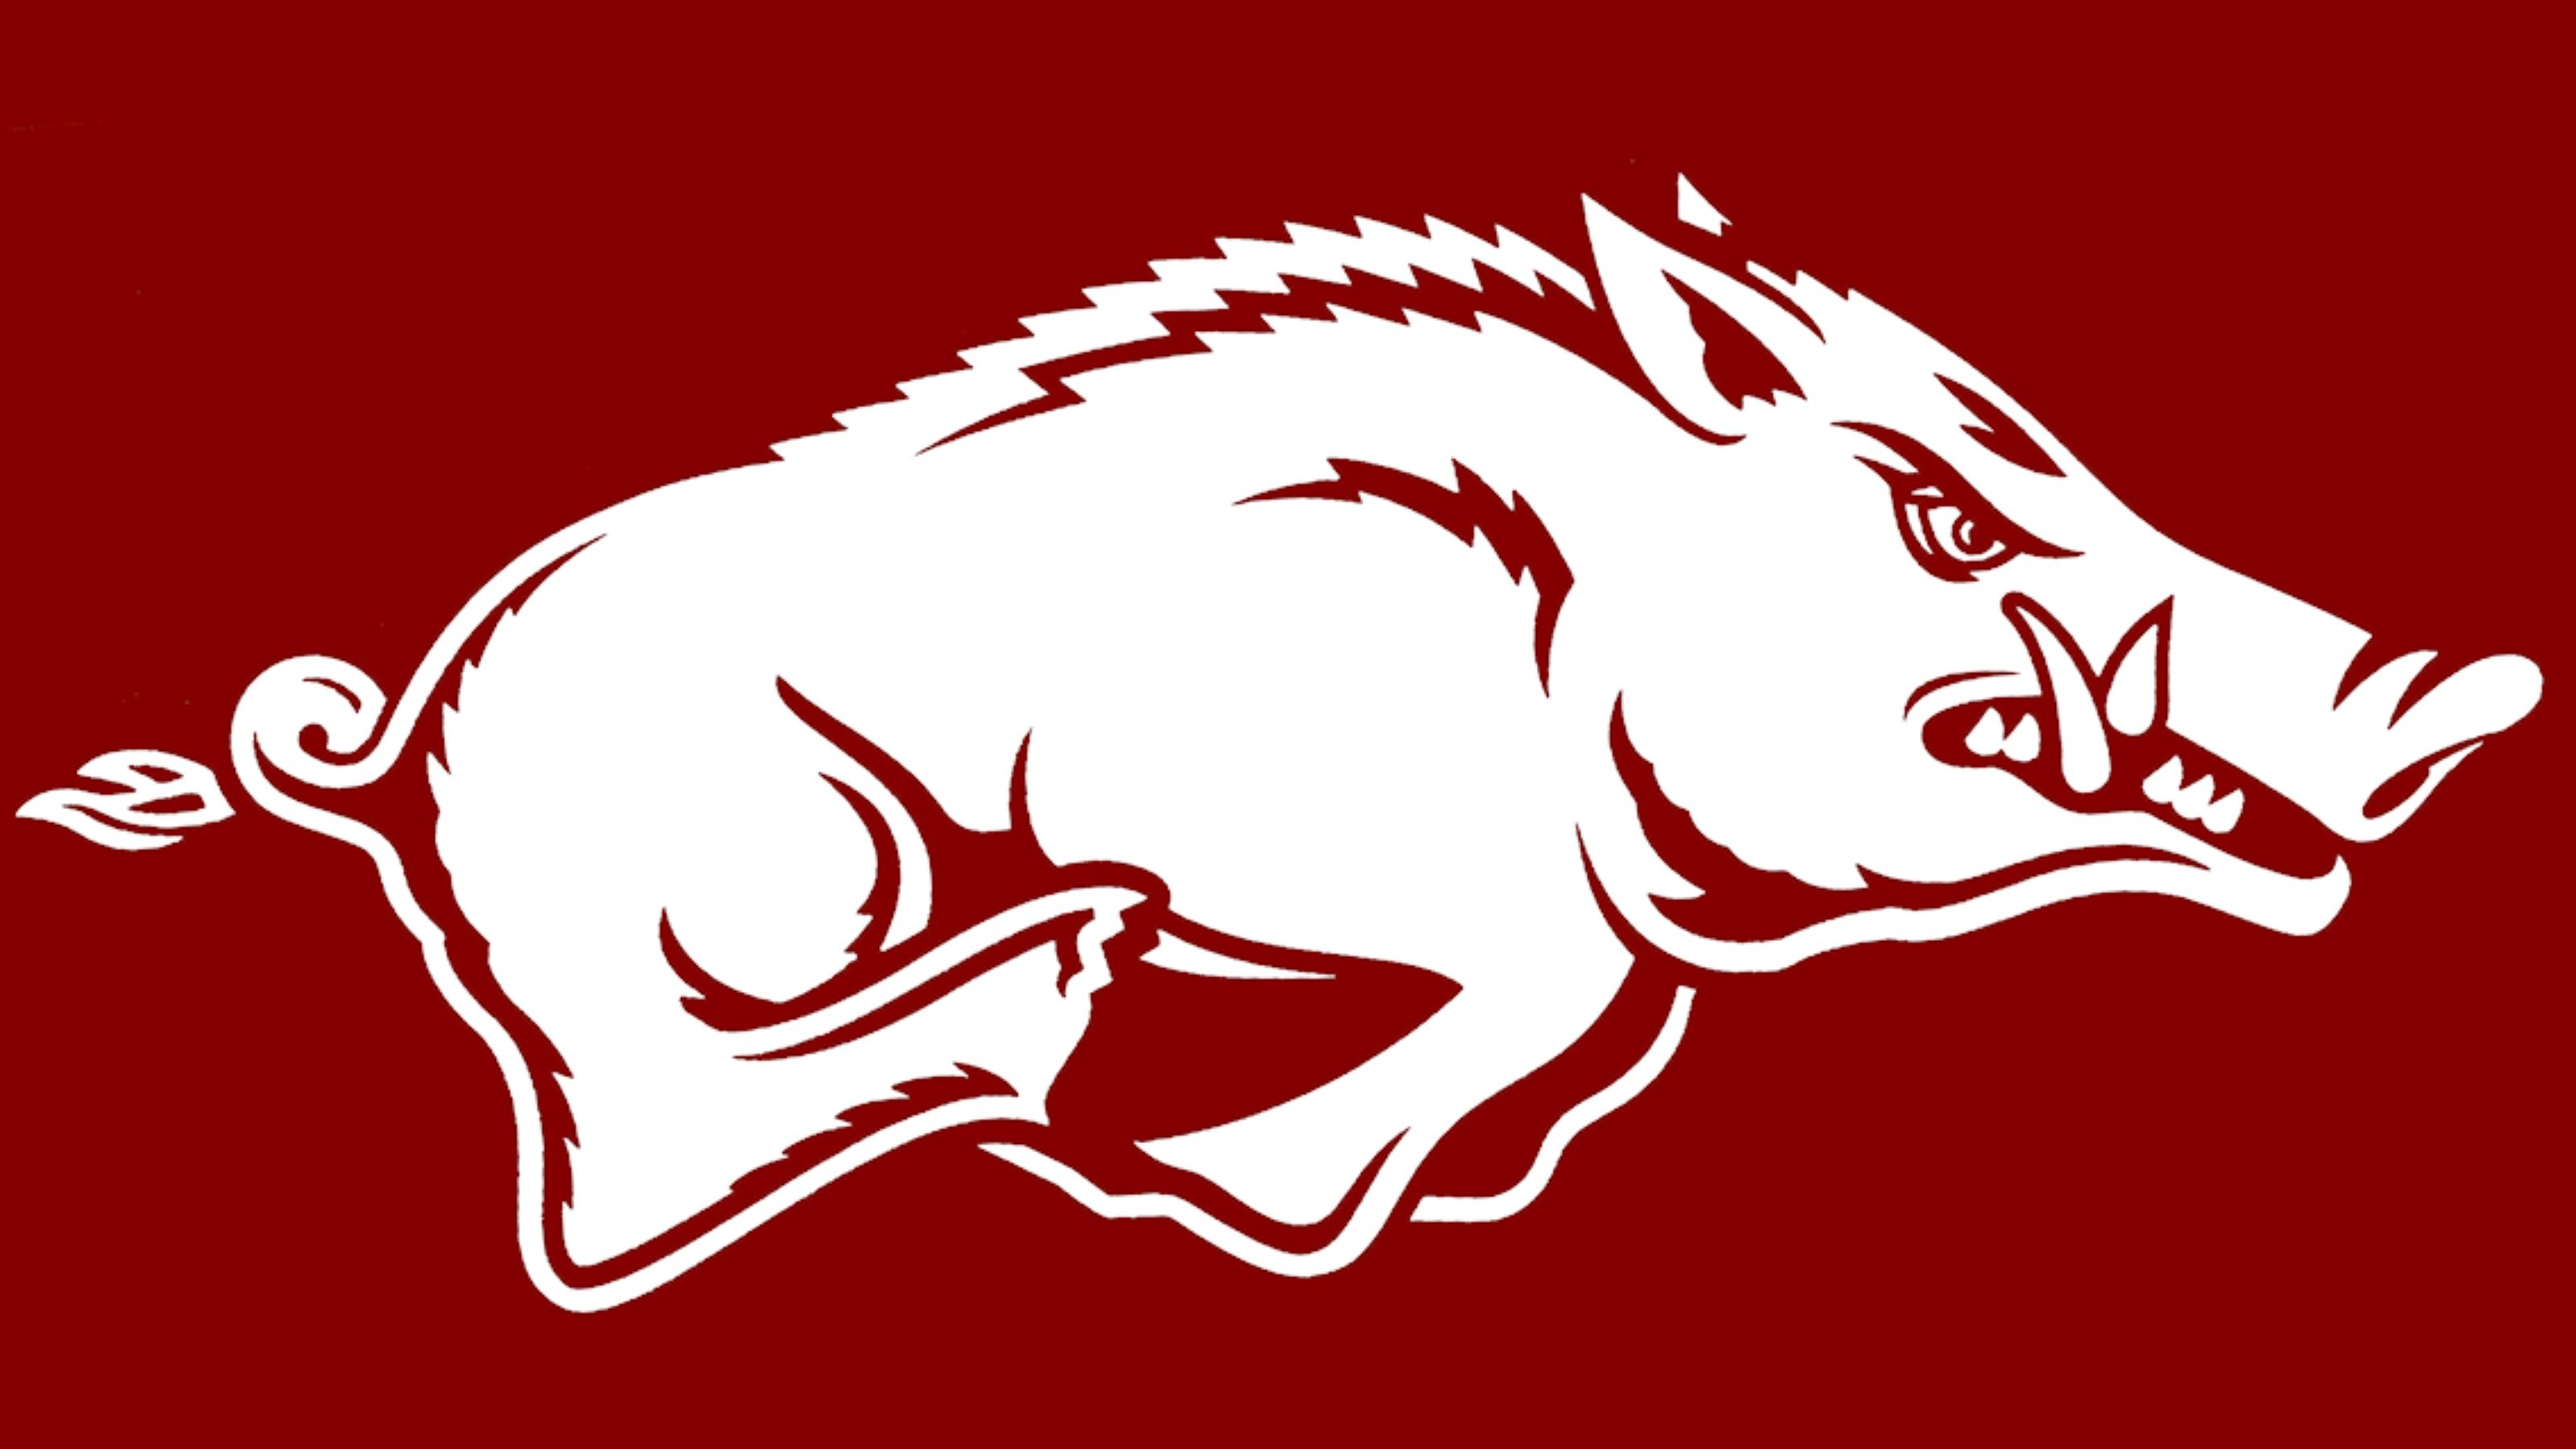 3200x1800 ARKANSAS RAZORBACKS college football wallpaper |  | 593927 |  WallpaperUP